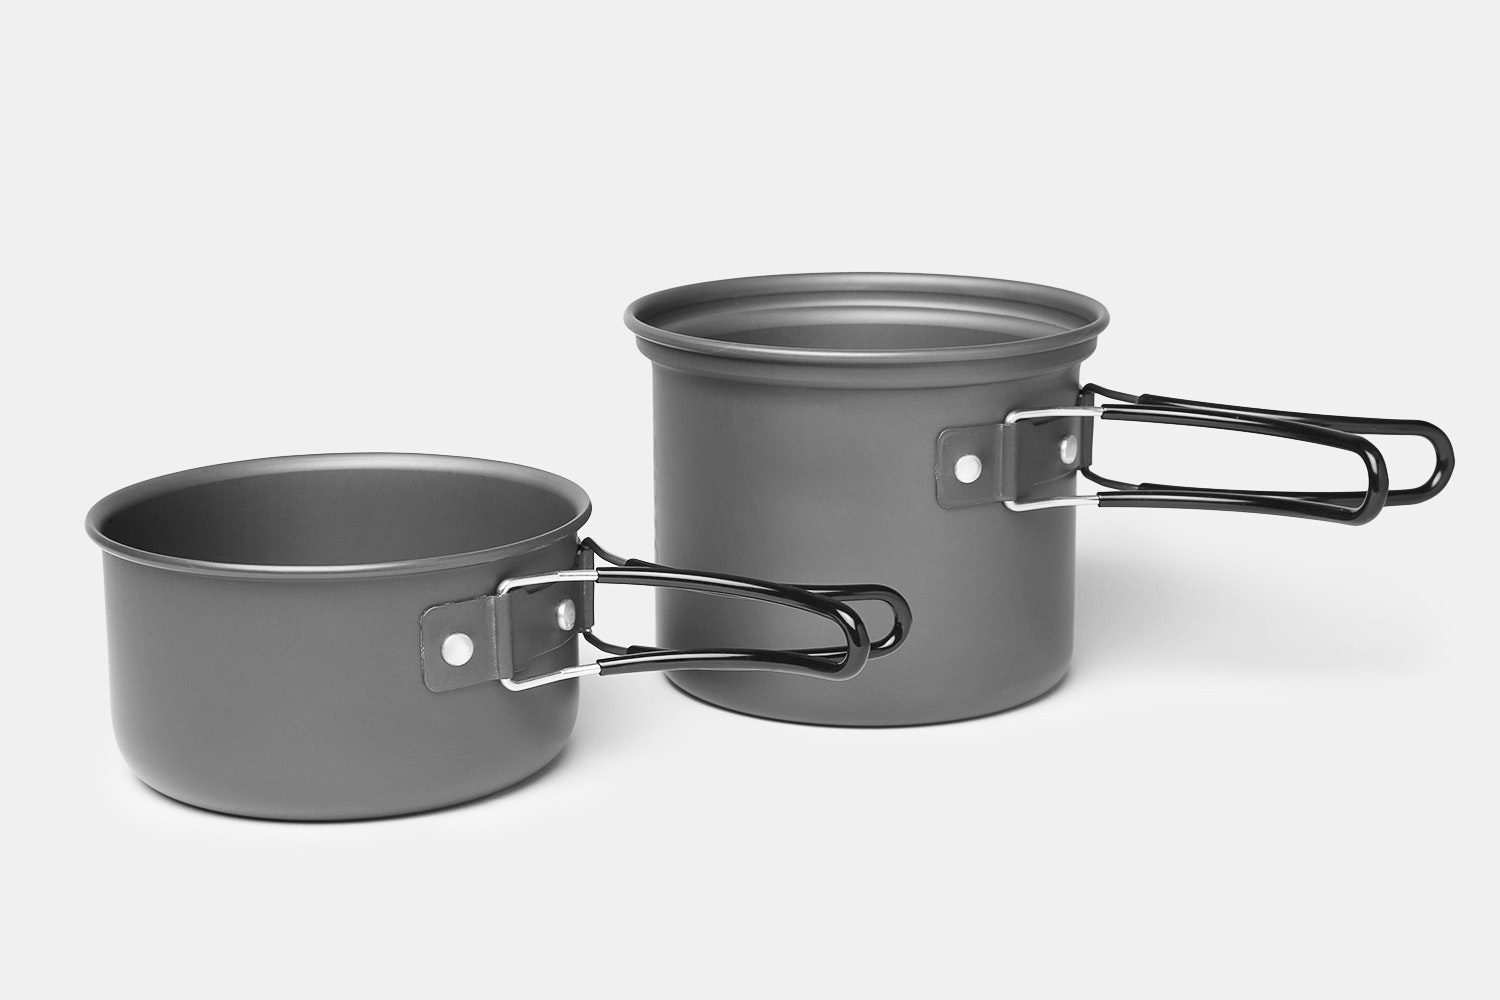 SOTO Amicus Stove & Cook Set Combo